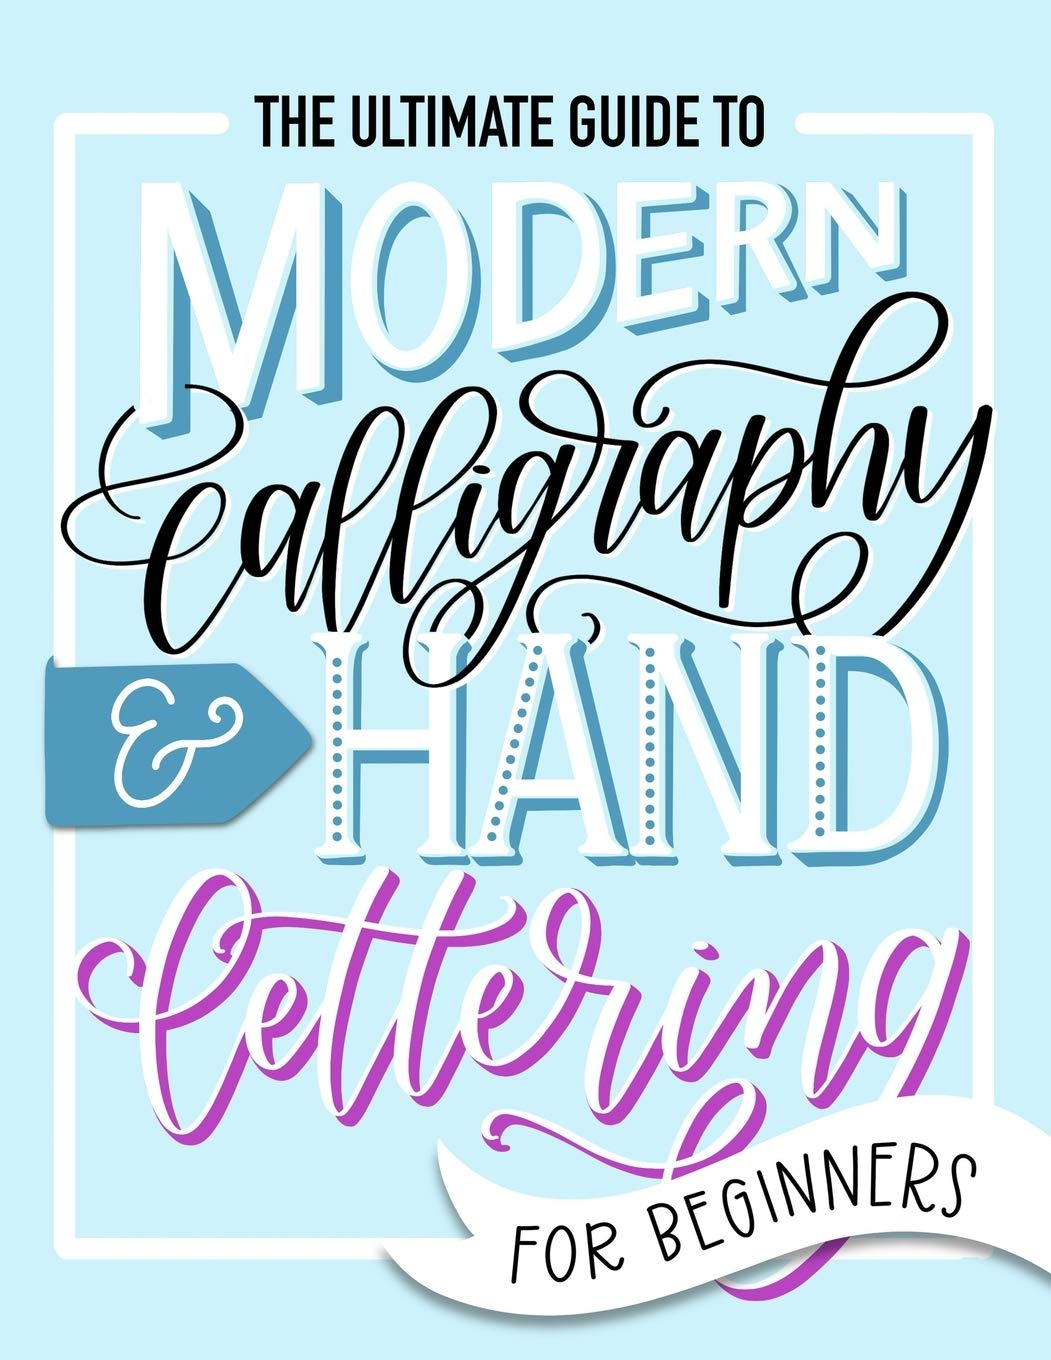 Image for The Ultimate Guide to Modern Calligraphy & Hand Lettering for Beginners: Learn to Letter: A Hand Lettering Workbook with Tips, Techniques, Practice Pages, and Projects